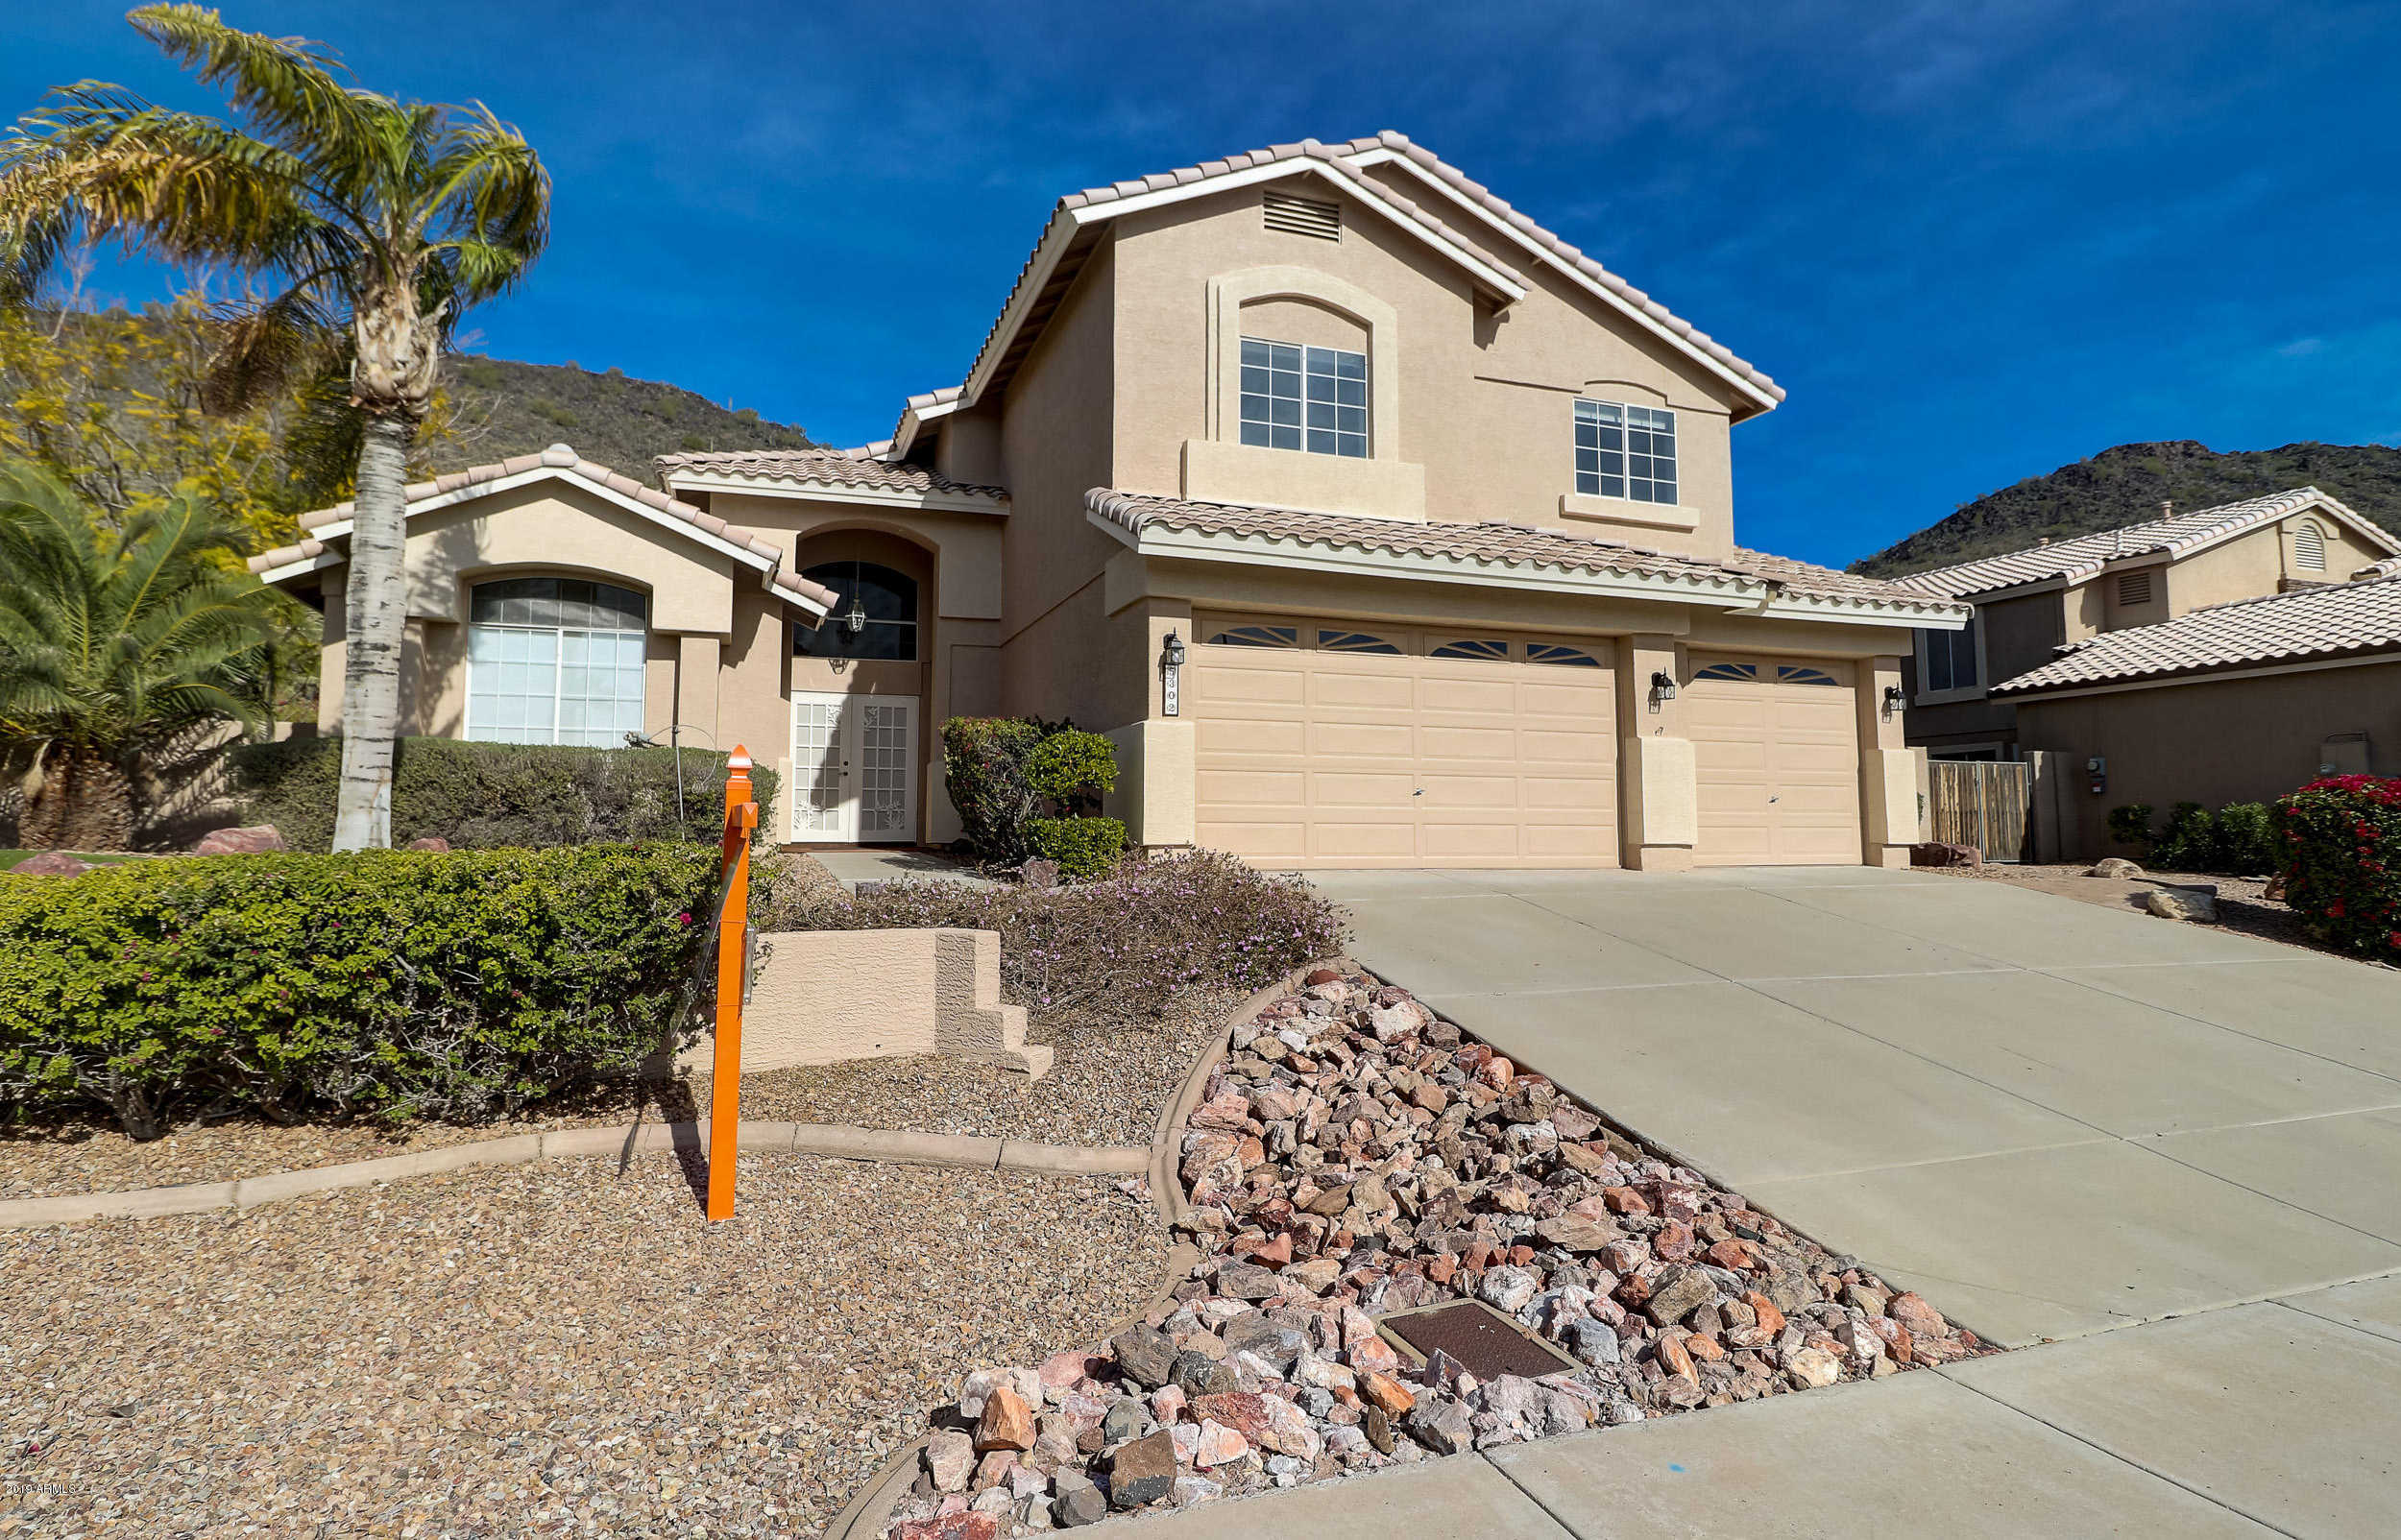 $548,000 - 5Br/4Ba - Home for Sale in Estates At Arrowhead Phase 1a, Glendale